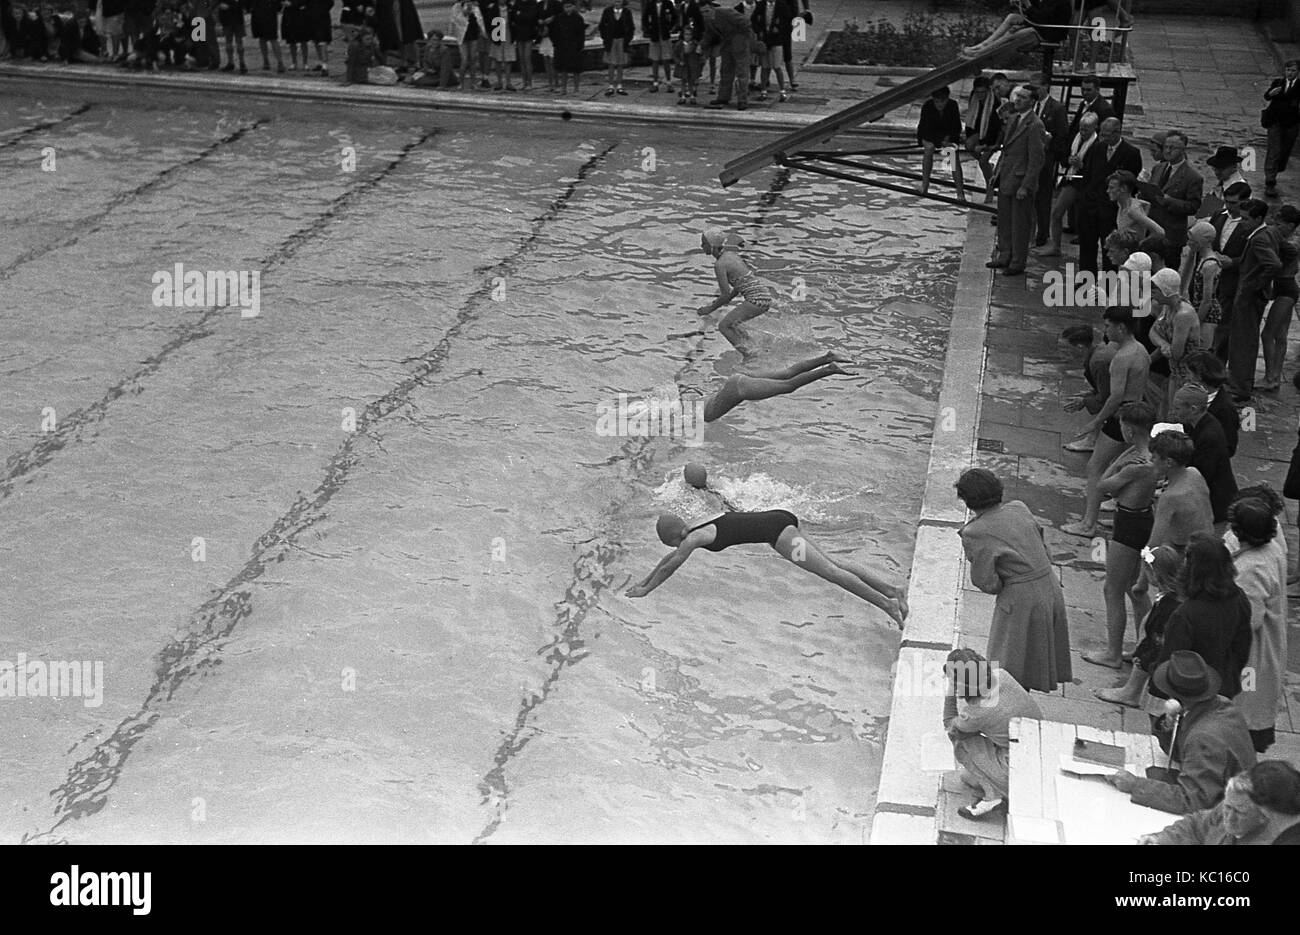 1950s, historical, young girls taking part in a swimming gala, with some diving in to start the race, others jumping - Stock Image